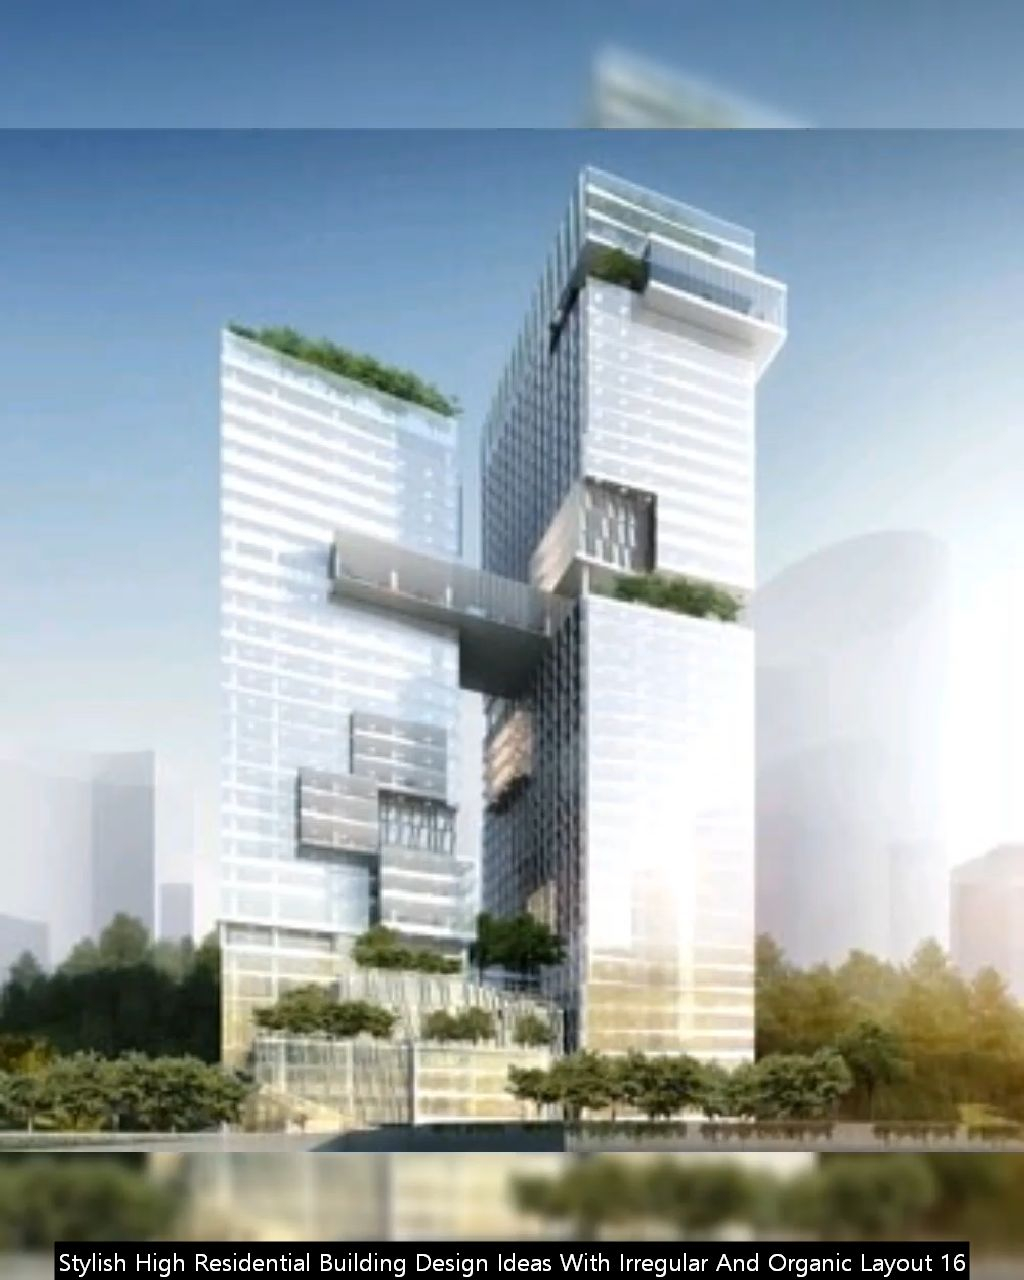 Stylish High Residential Building Design Ideas With Irregular And Organic Layout 16